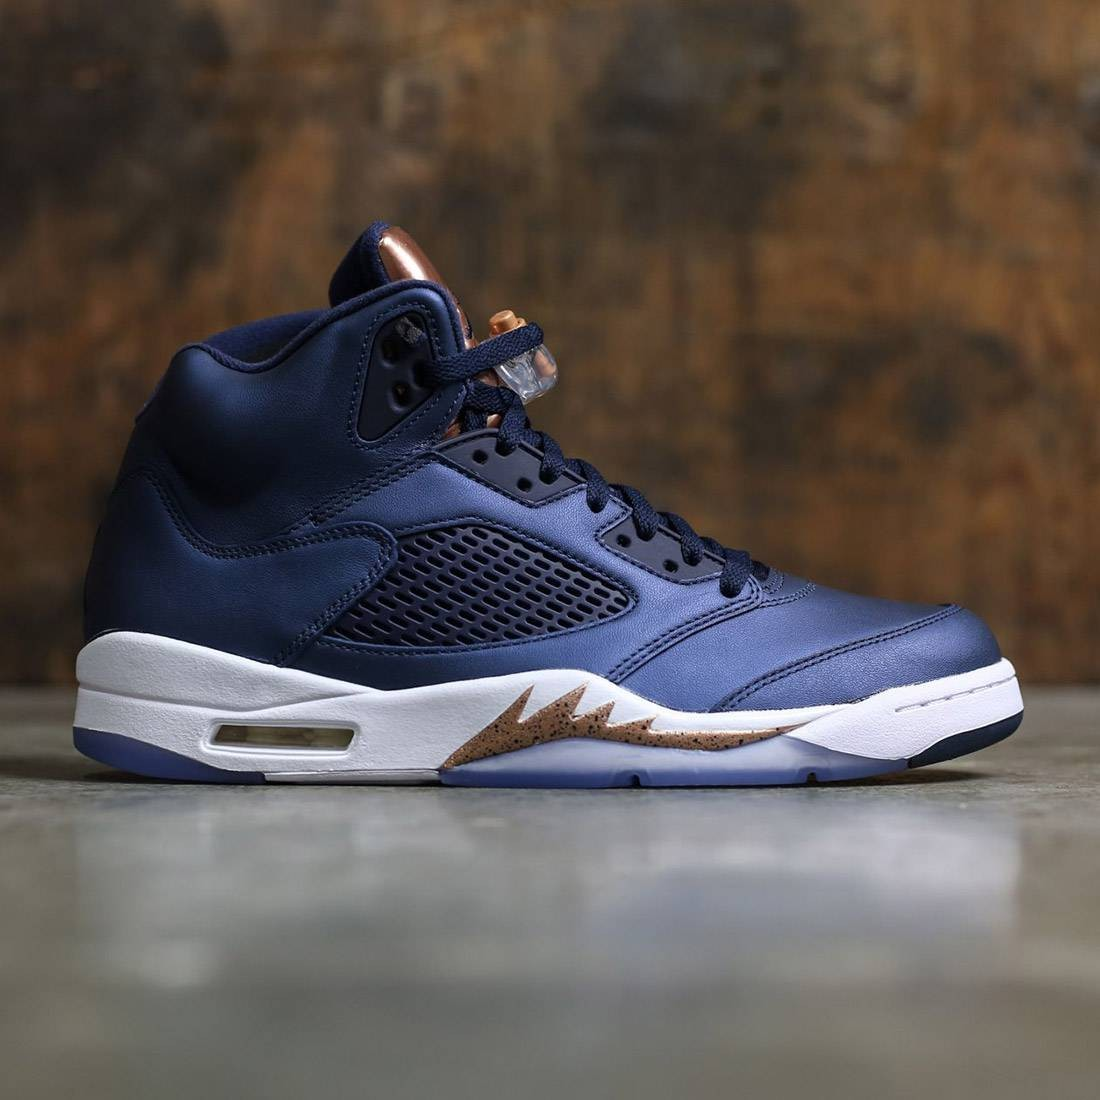 Air Jordan 5 Retro Men (navy / obsidian / white-mtlc red bronze)